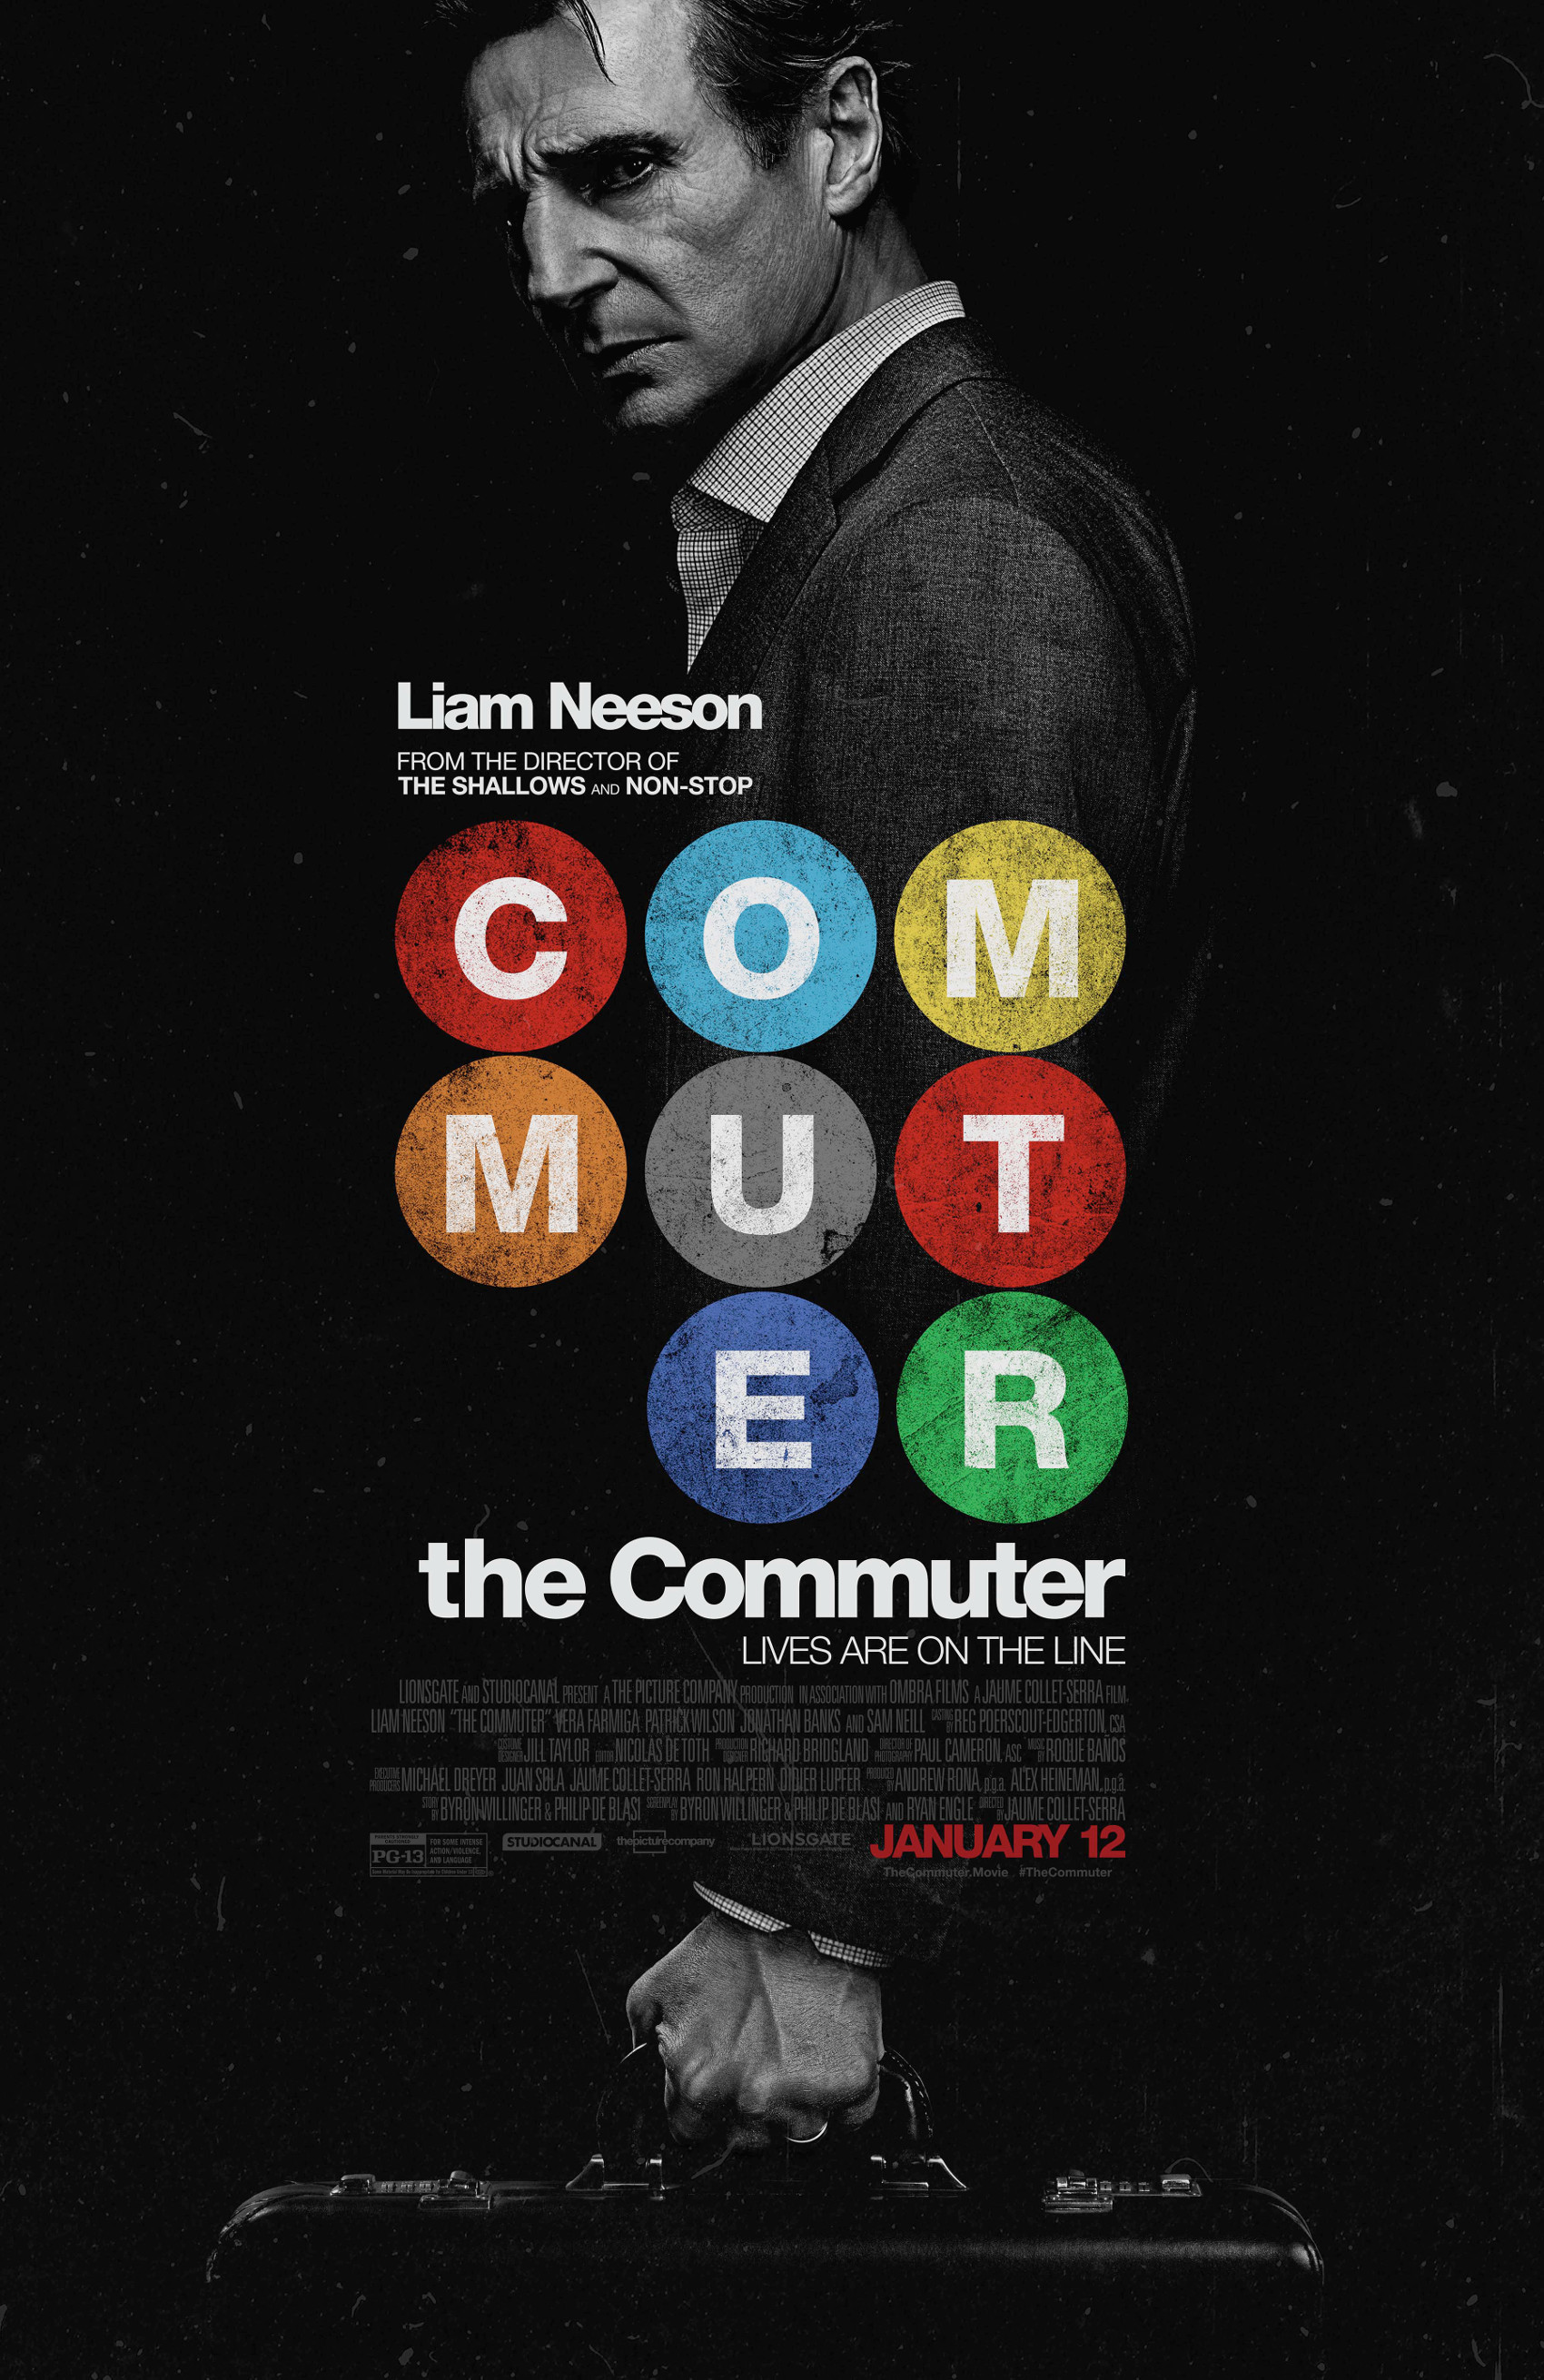 The Commuter Poster Liam Neeson